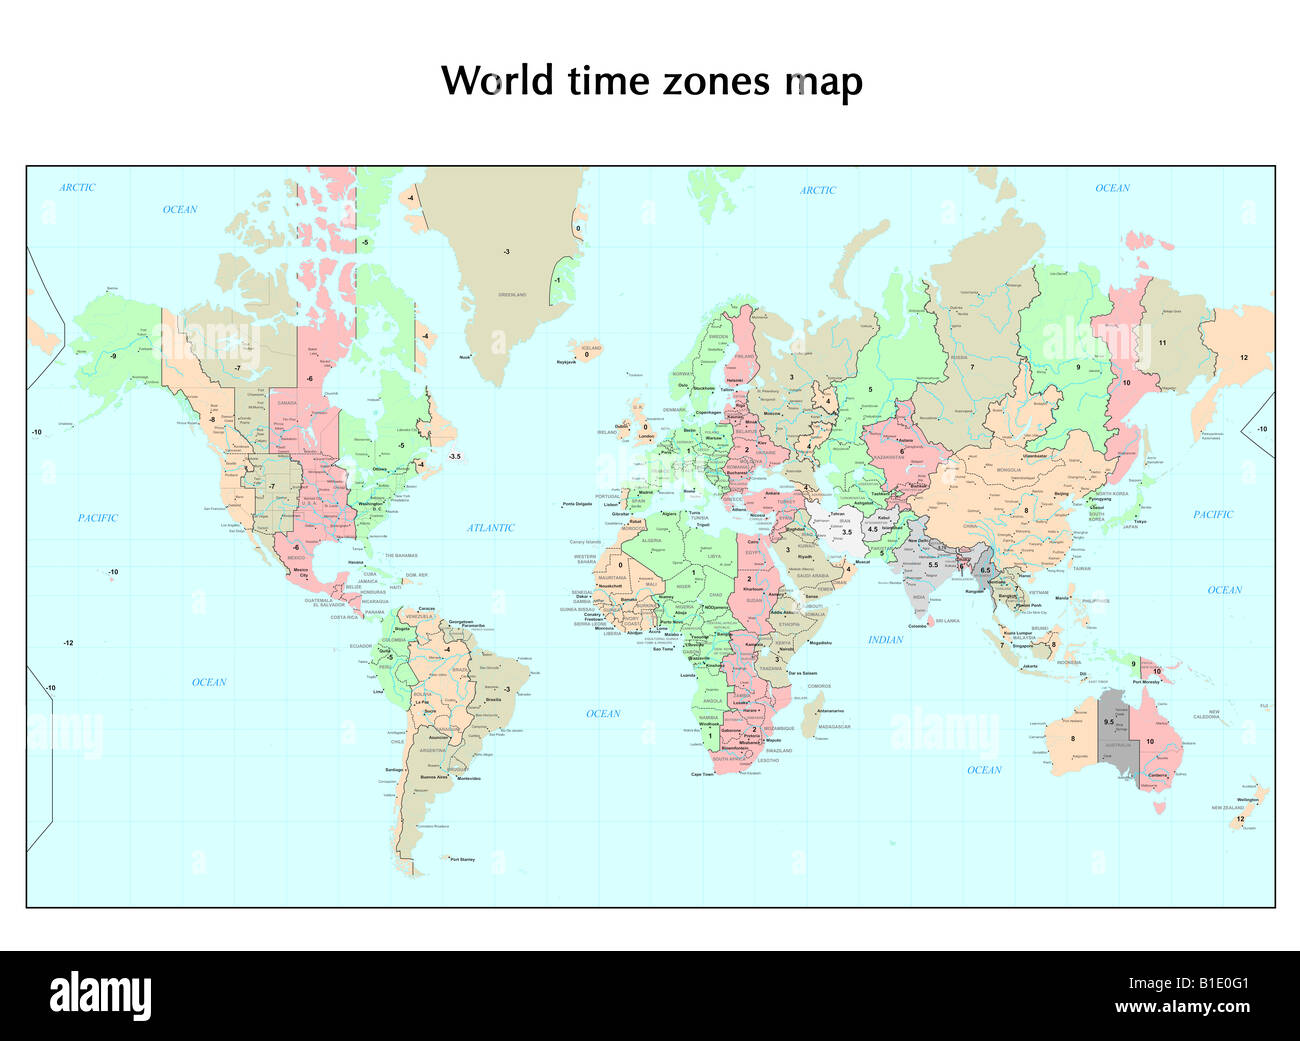 World time zones map Stock Photo